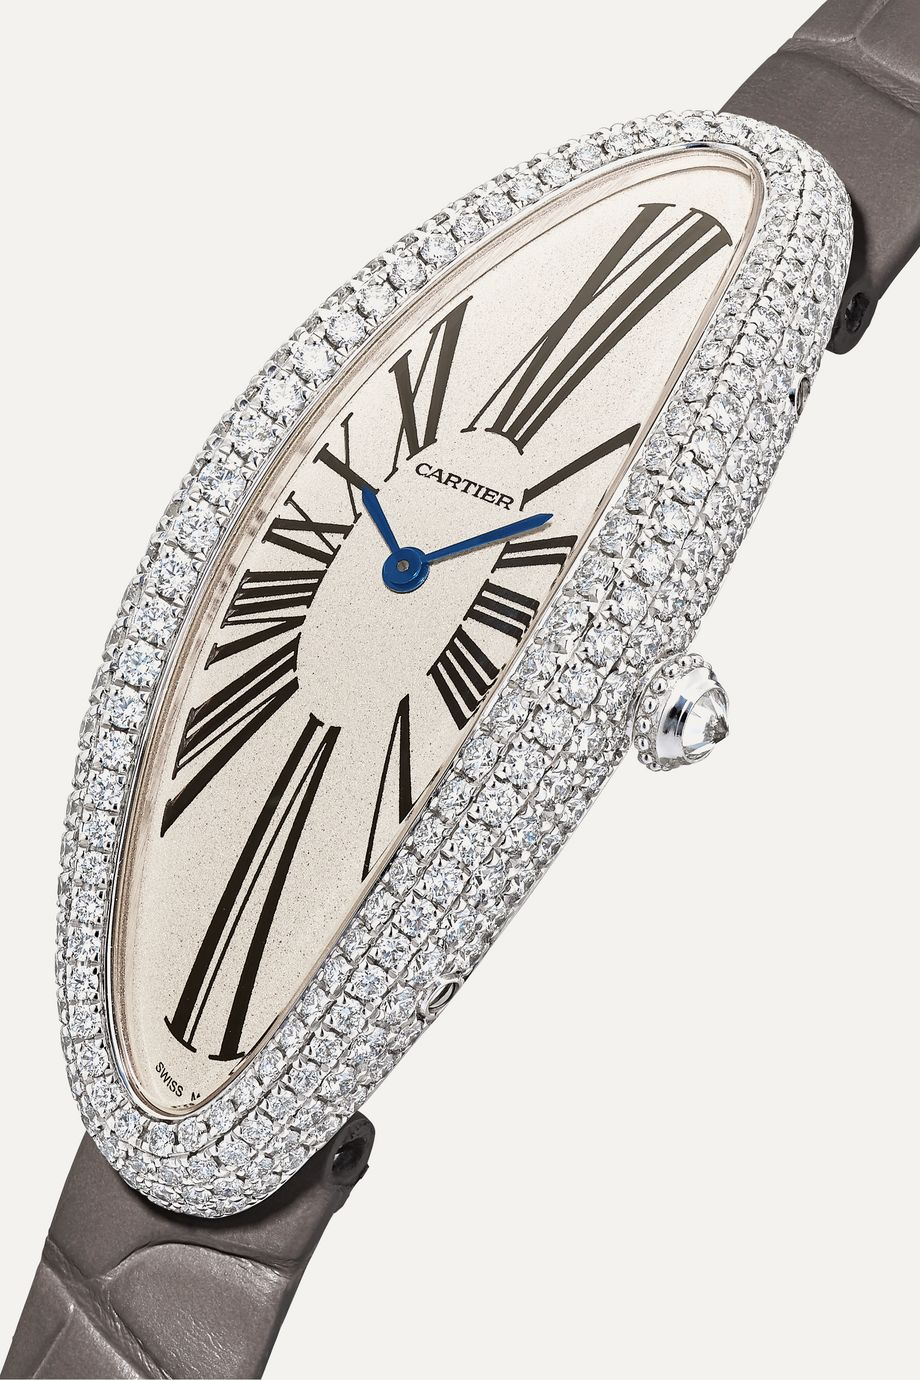 Cartier Montre en or blanc 18 carats et diamants à bracelet en alligator Baignoire Allongée 21 mm